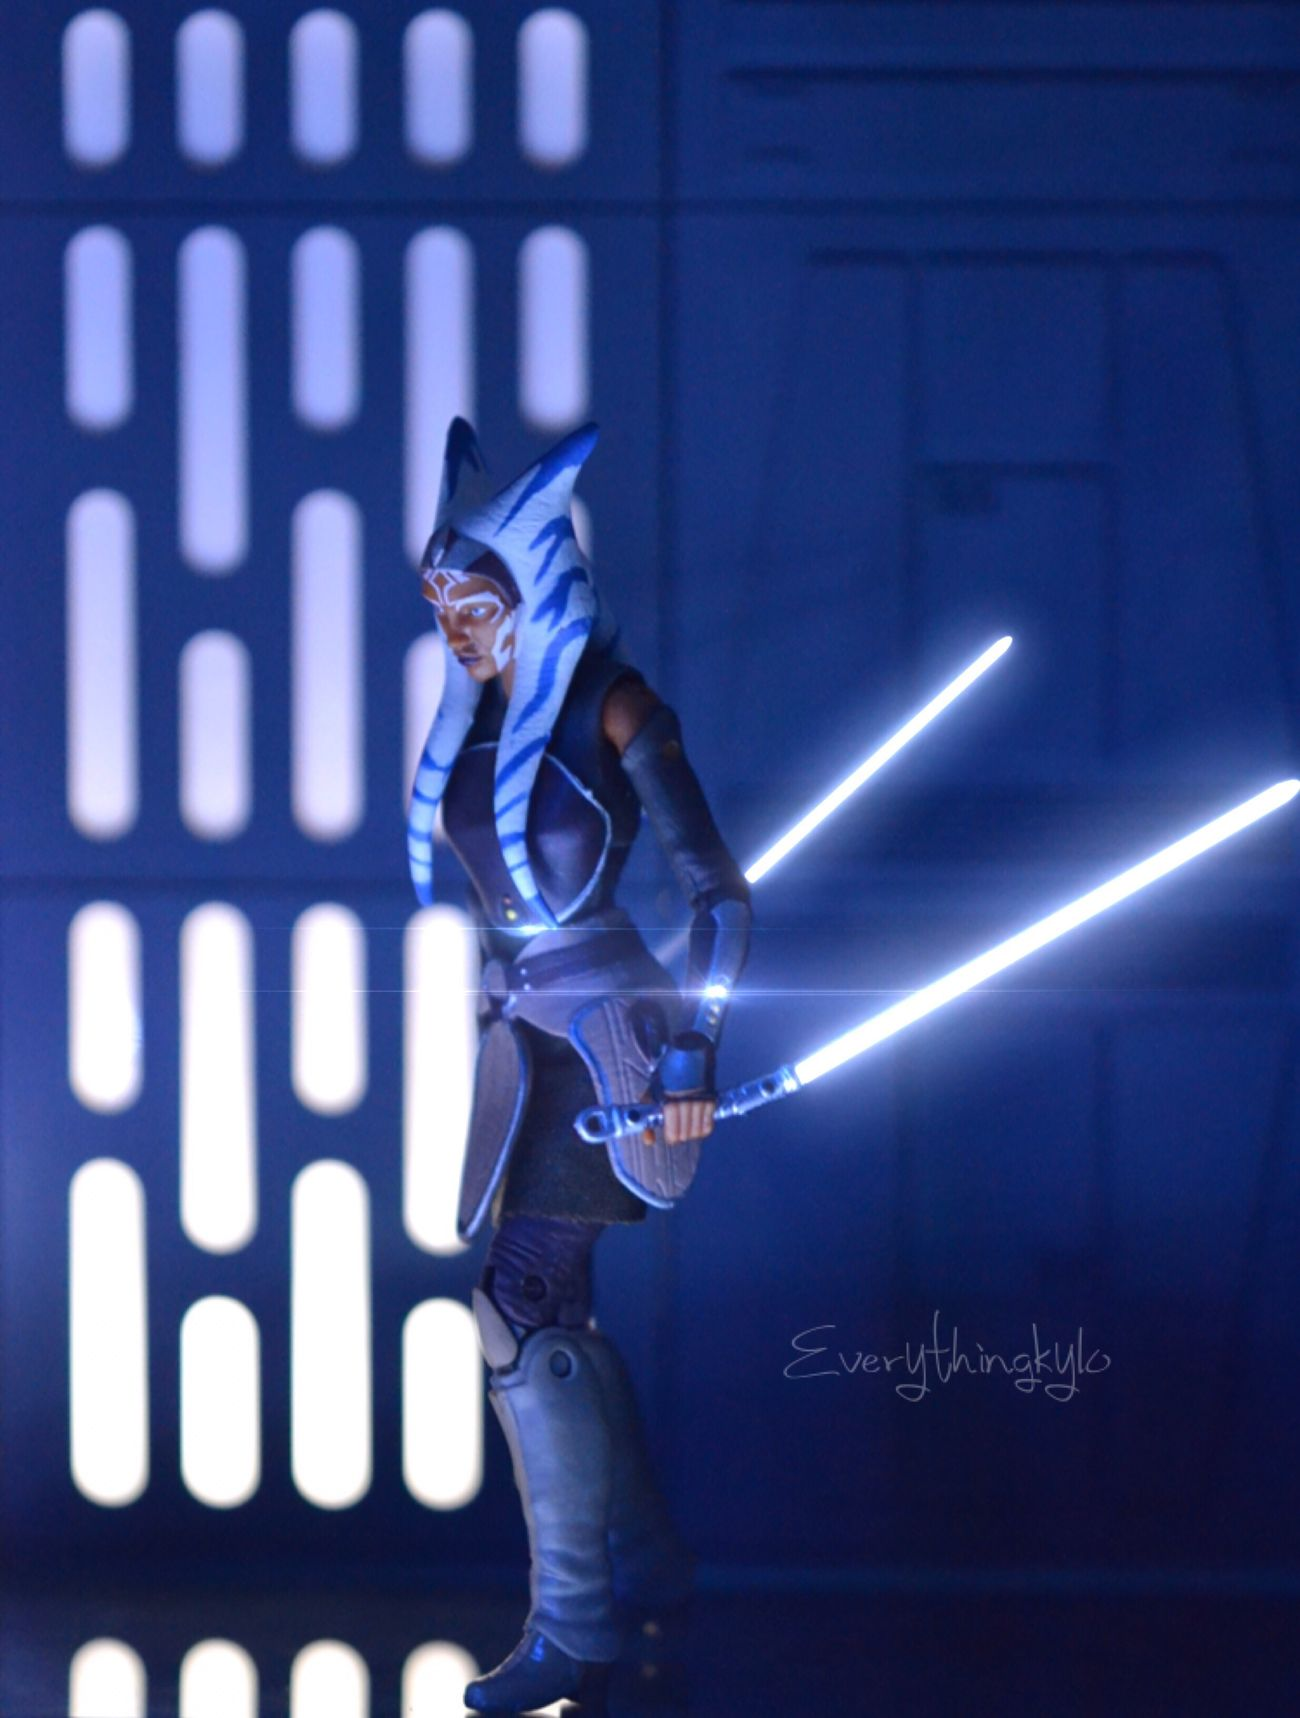 """Despite what you hear, i'm still a Jedi""⚪️⚪️⚪️⚪️⚪️⚪️⚪️⚪️ Ahsokatano Snips Blackseries SkyGuy Starwarsrebels Starwarsblackseries Toyphotography Starwarsfan Starwars"